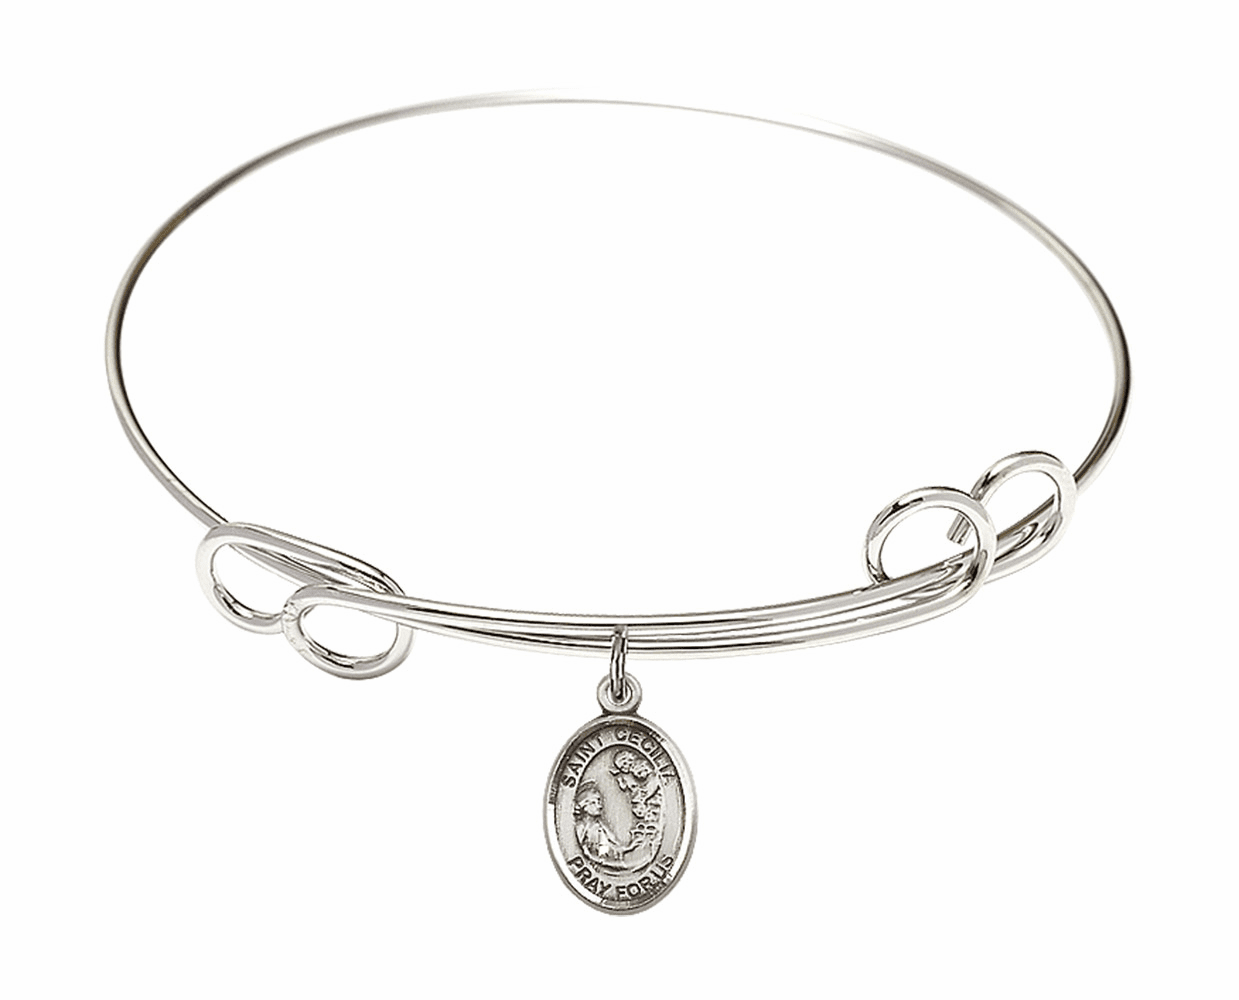 Round Loop St Cecilia Bangle Charm Bracelet by Bliss